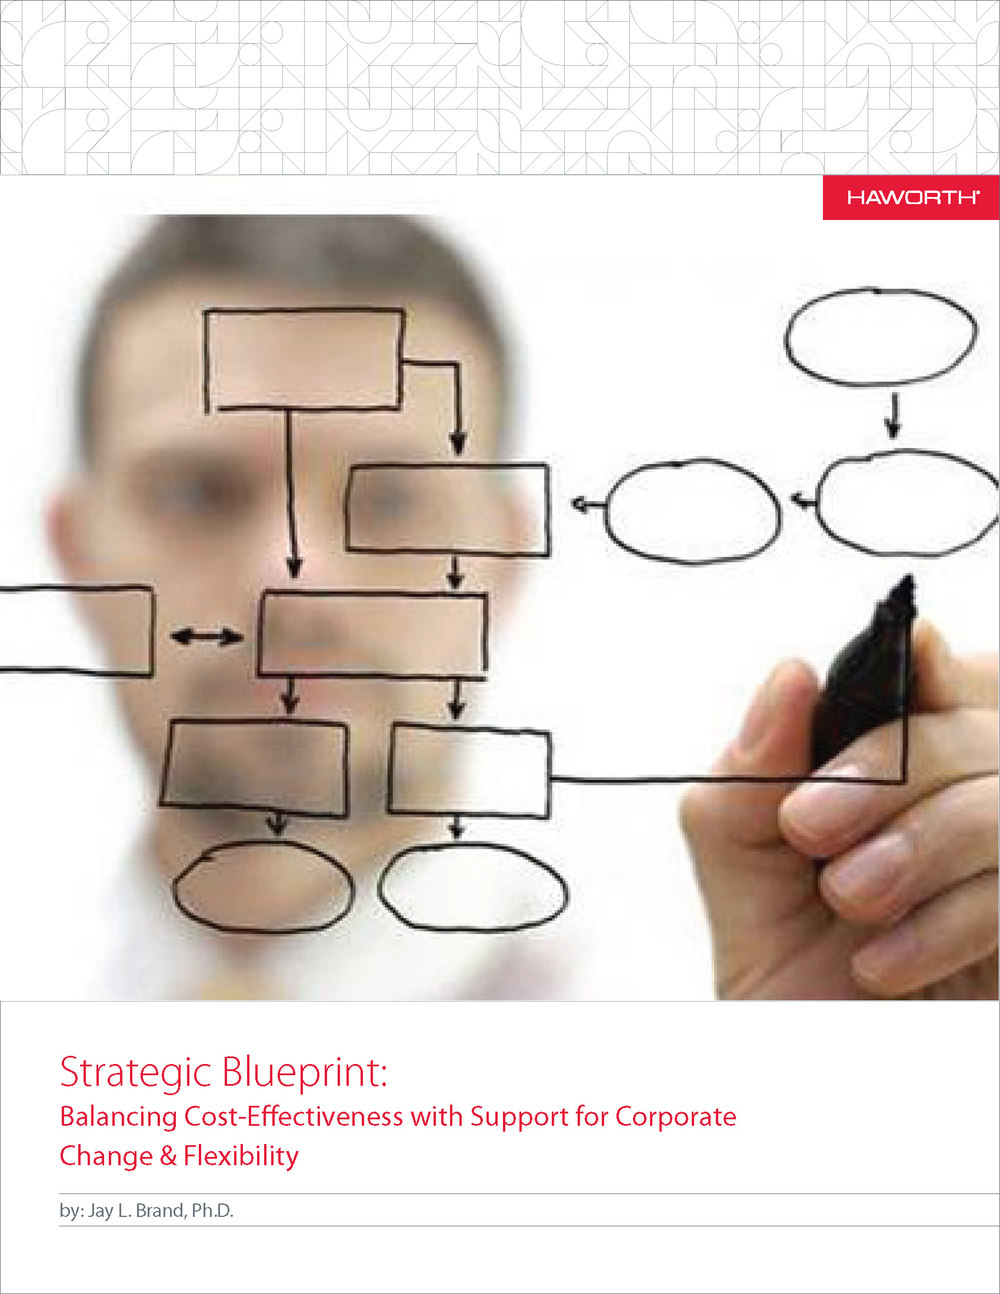 Strategic Blueprint: Balancing Cost-Effectiveness with Support for Corporate Change & Flexibility:  courtesy of Haworth